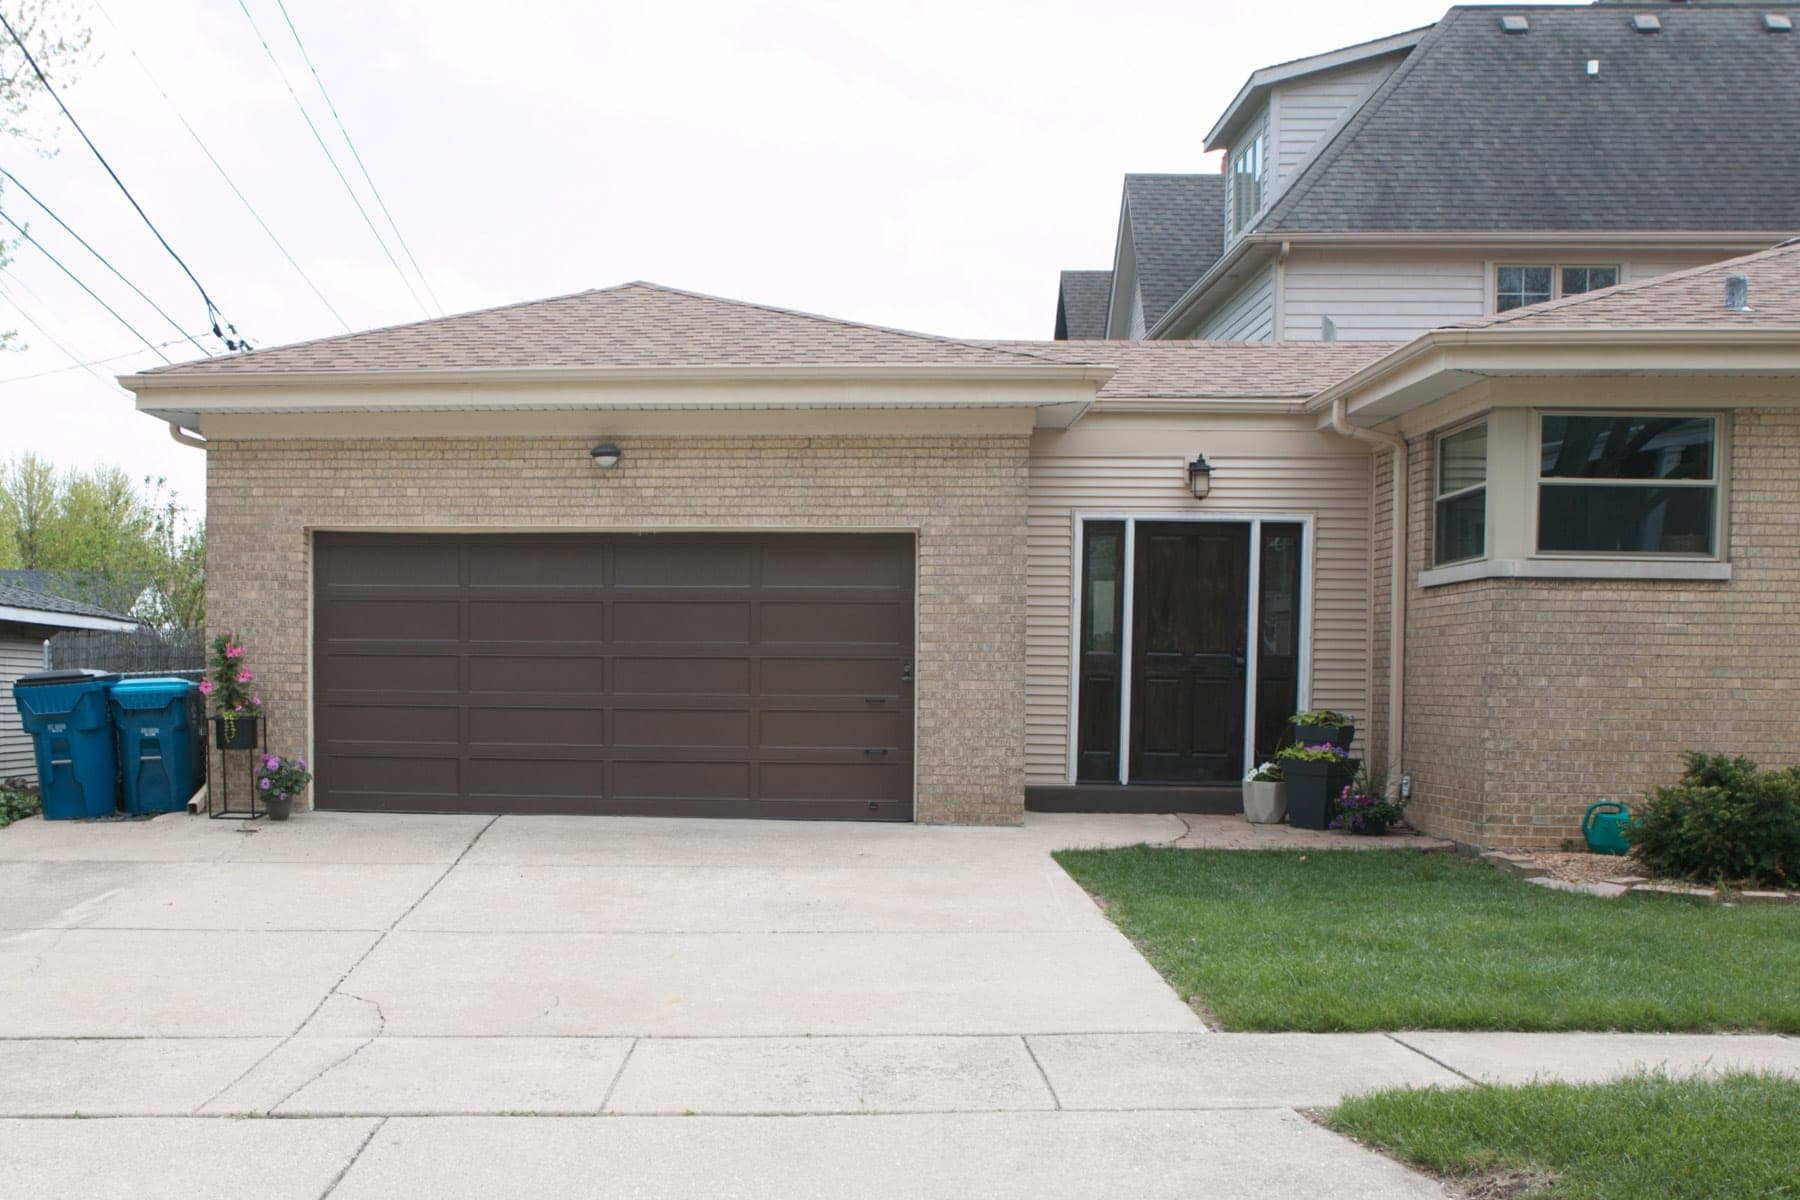 A brown garage door needs some attention to improve the curb appeal of this home.